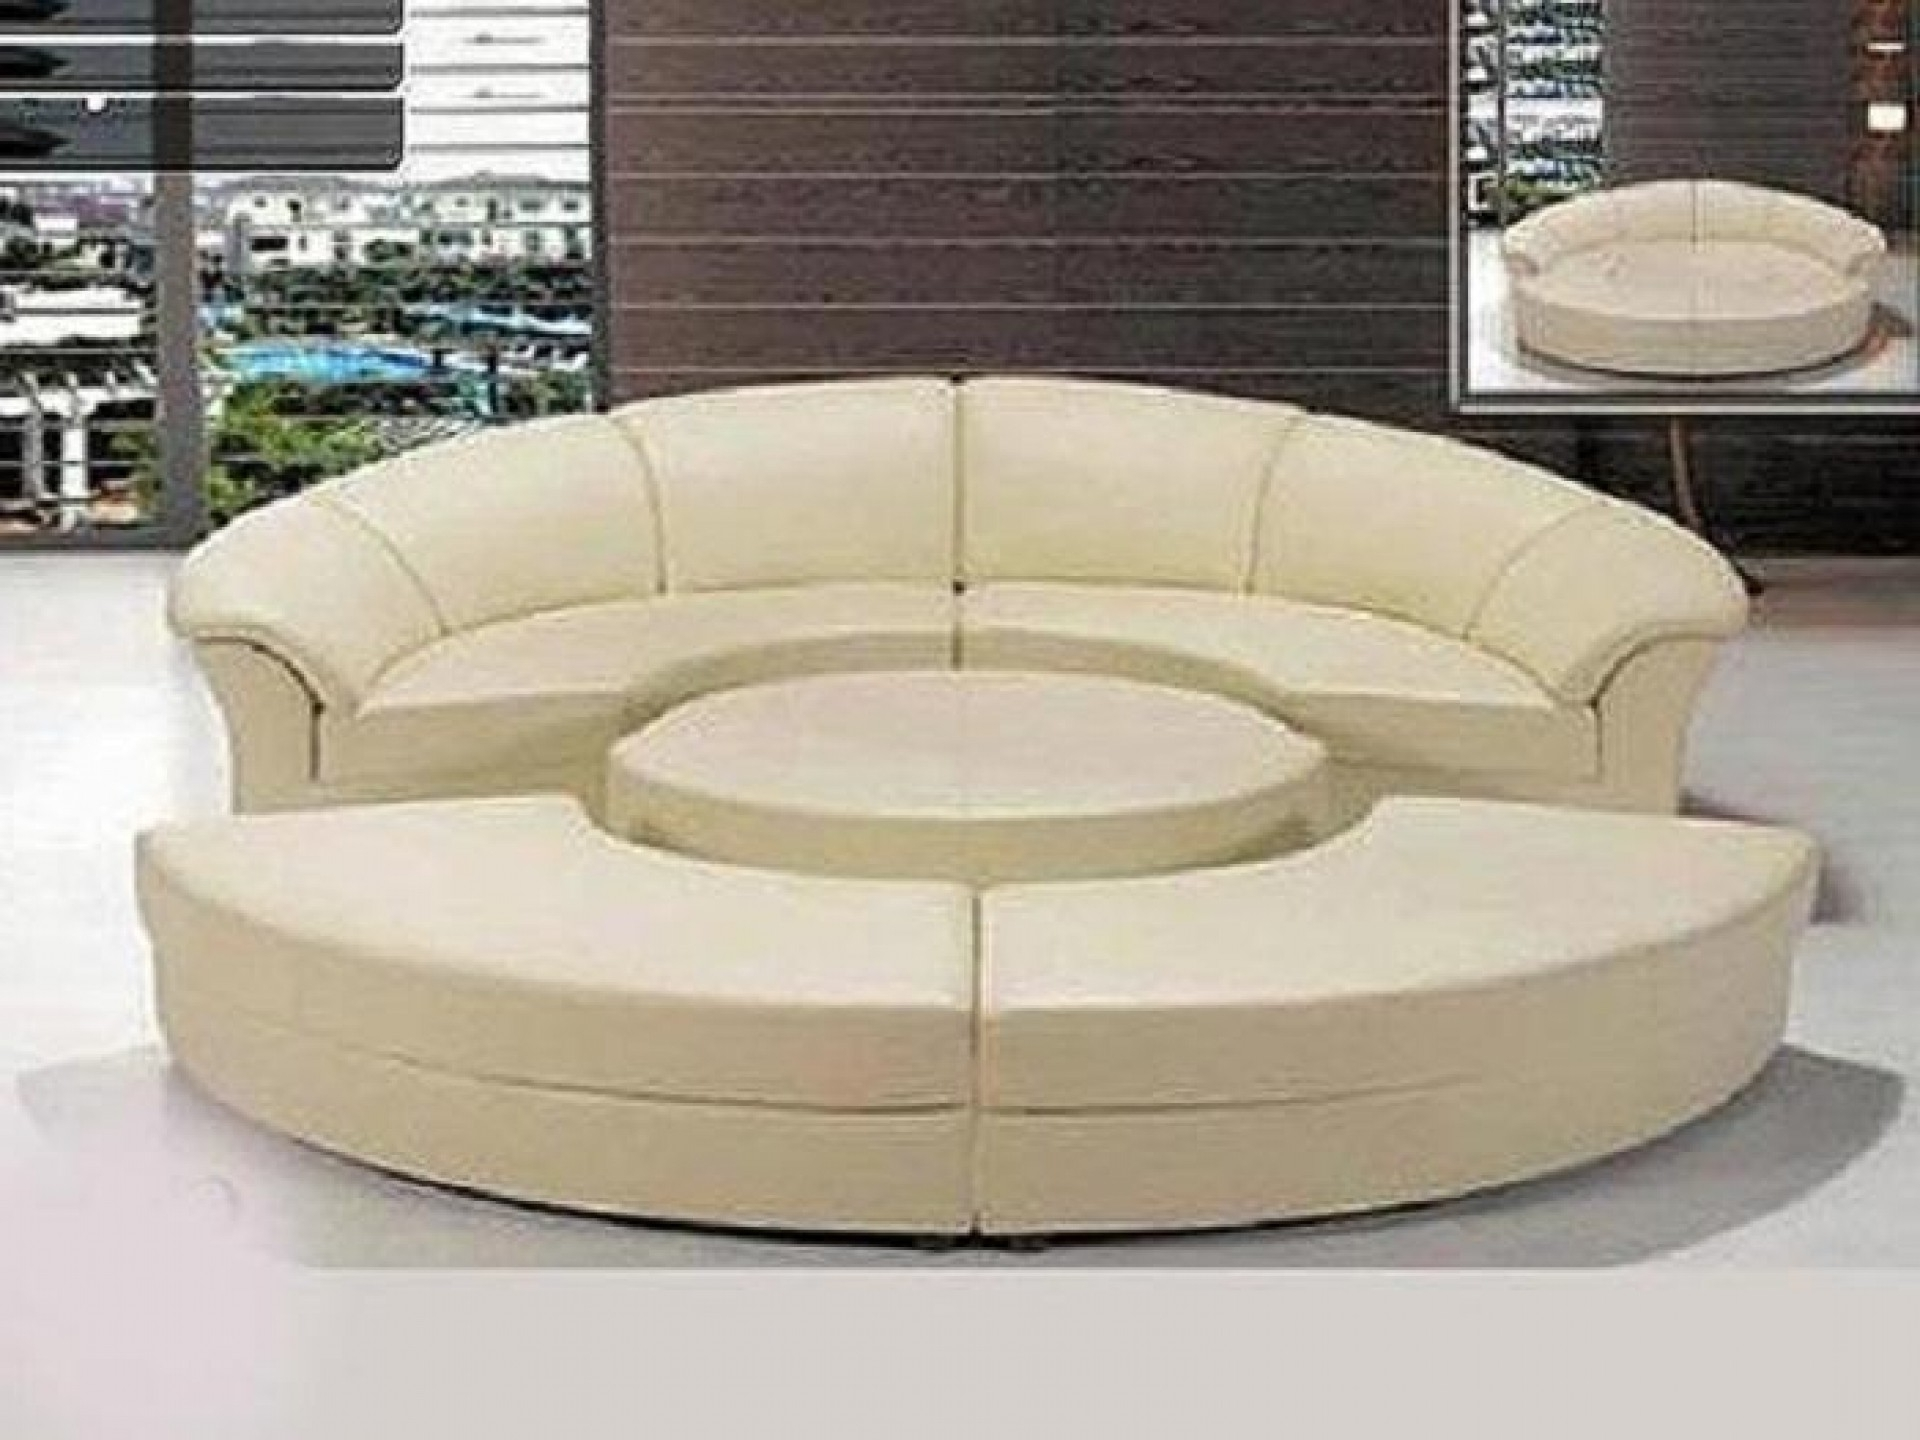 Affordable Tufted Sofas With Current Cool Cheap Sofas For Sale For Your Sofa Glamorous Round Sectional (View 5 of 15)